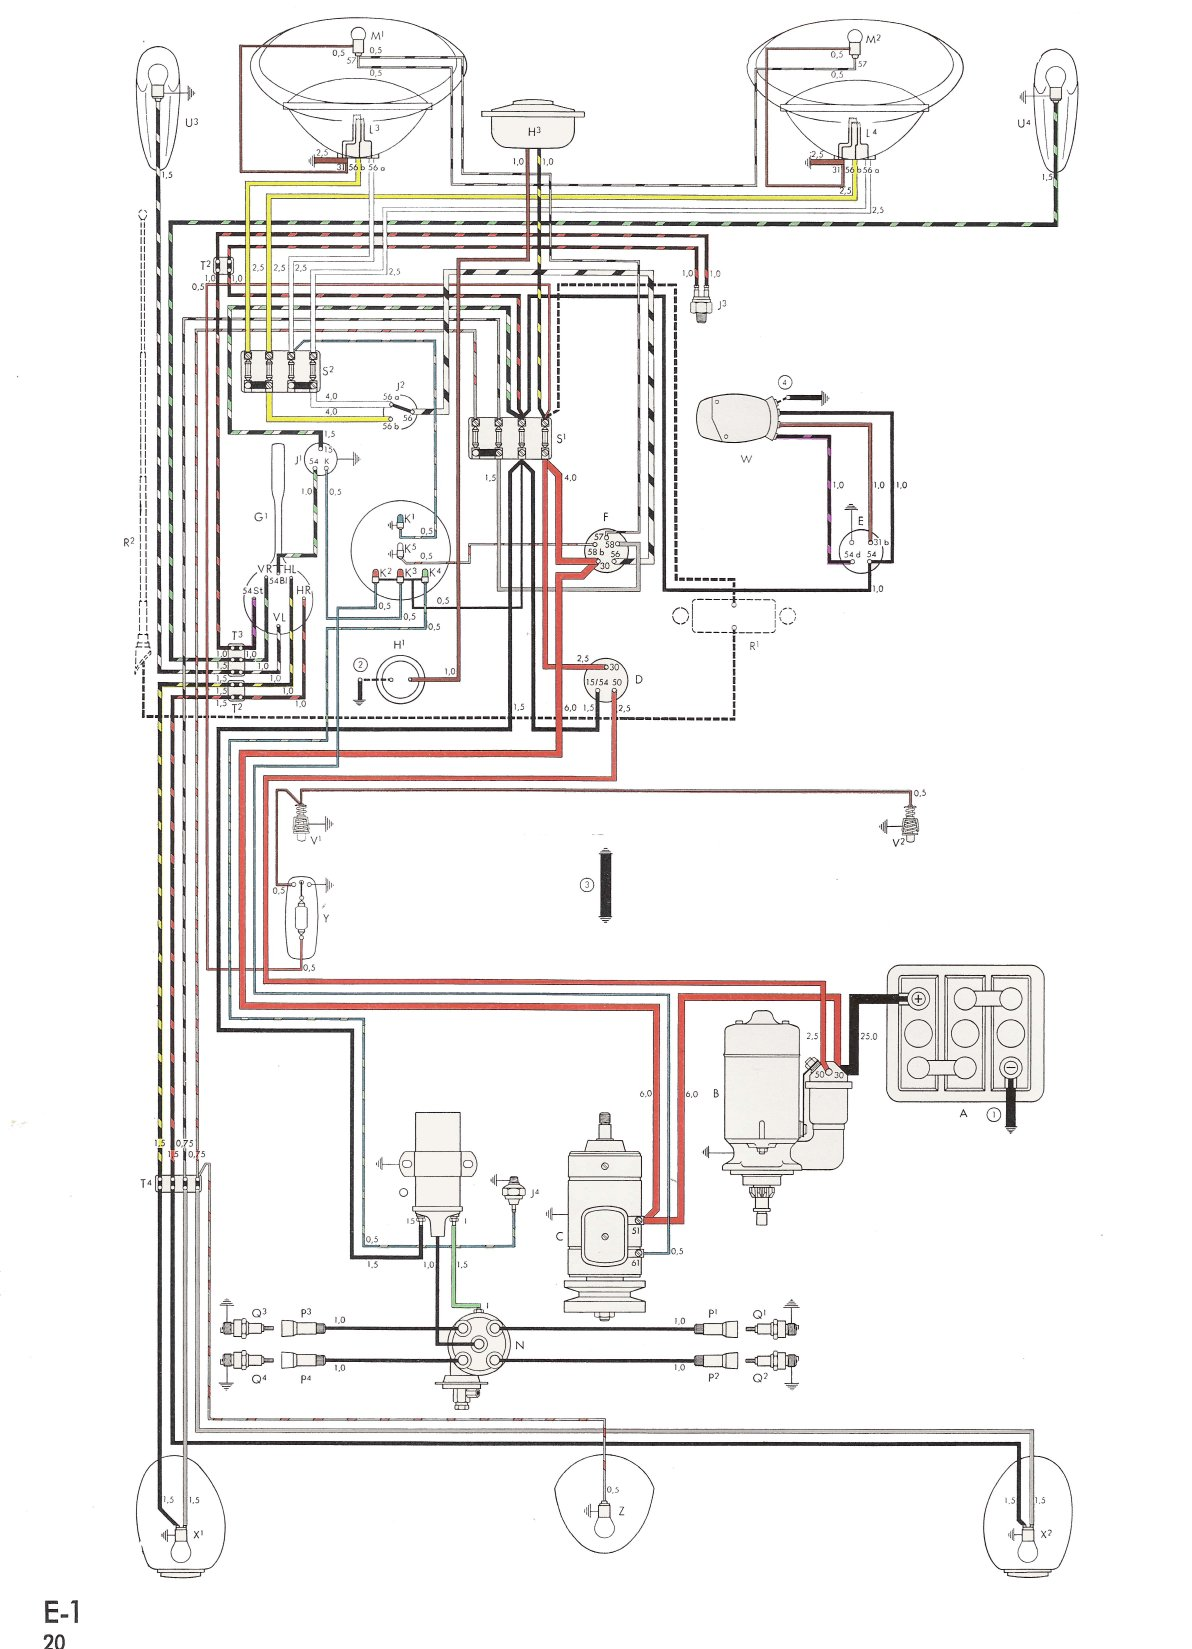 Vw Baja Wiring Diagram Data Schematic Four Pin For Scooter Thesamba Com Type 1 Diagrams Rh Cruser